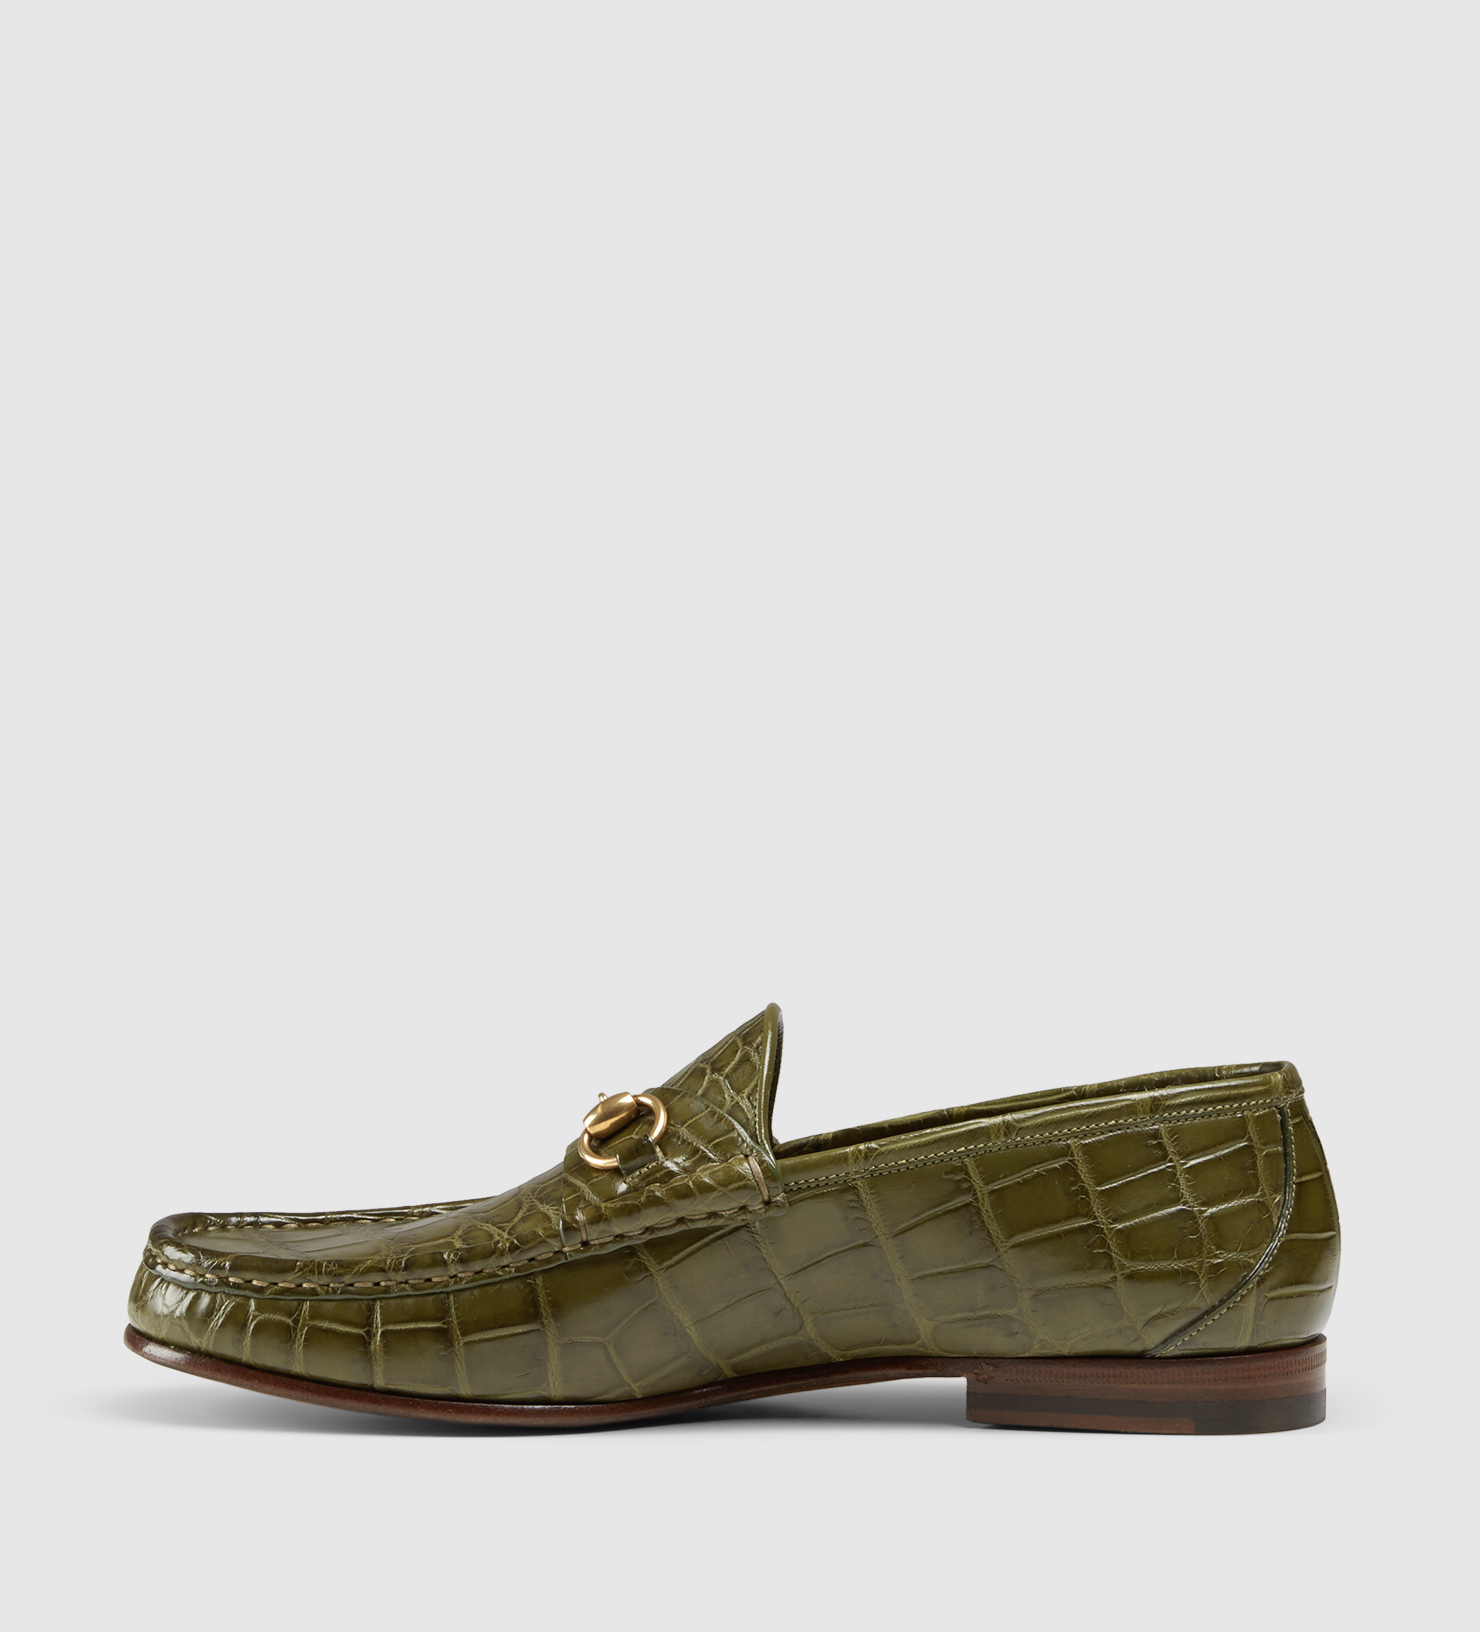 37c061c7f Gucci Men's Crocodile 1953 Horsebit Loafer in Green for Men - Lyst